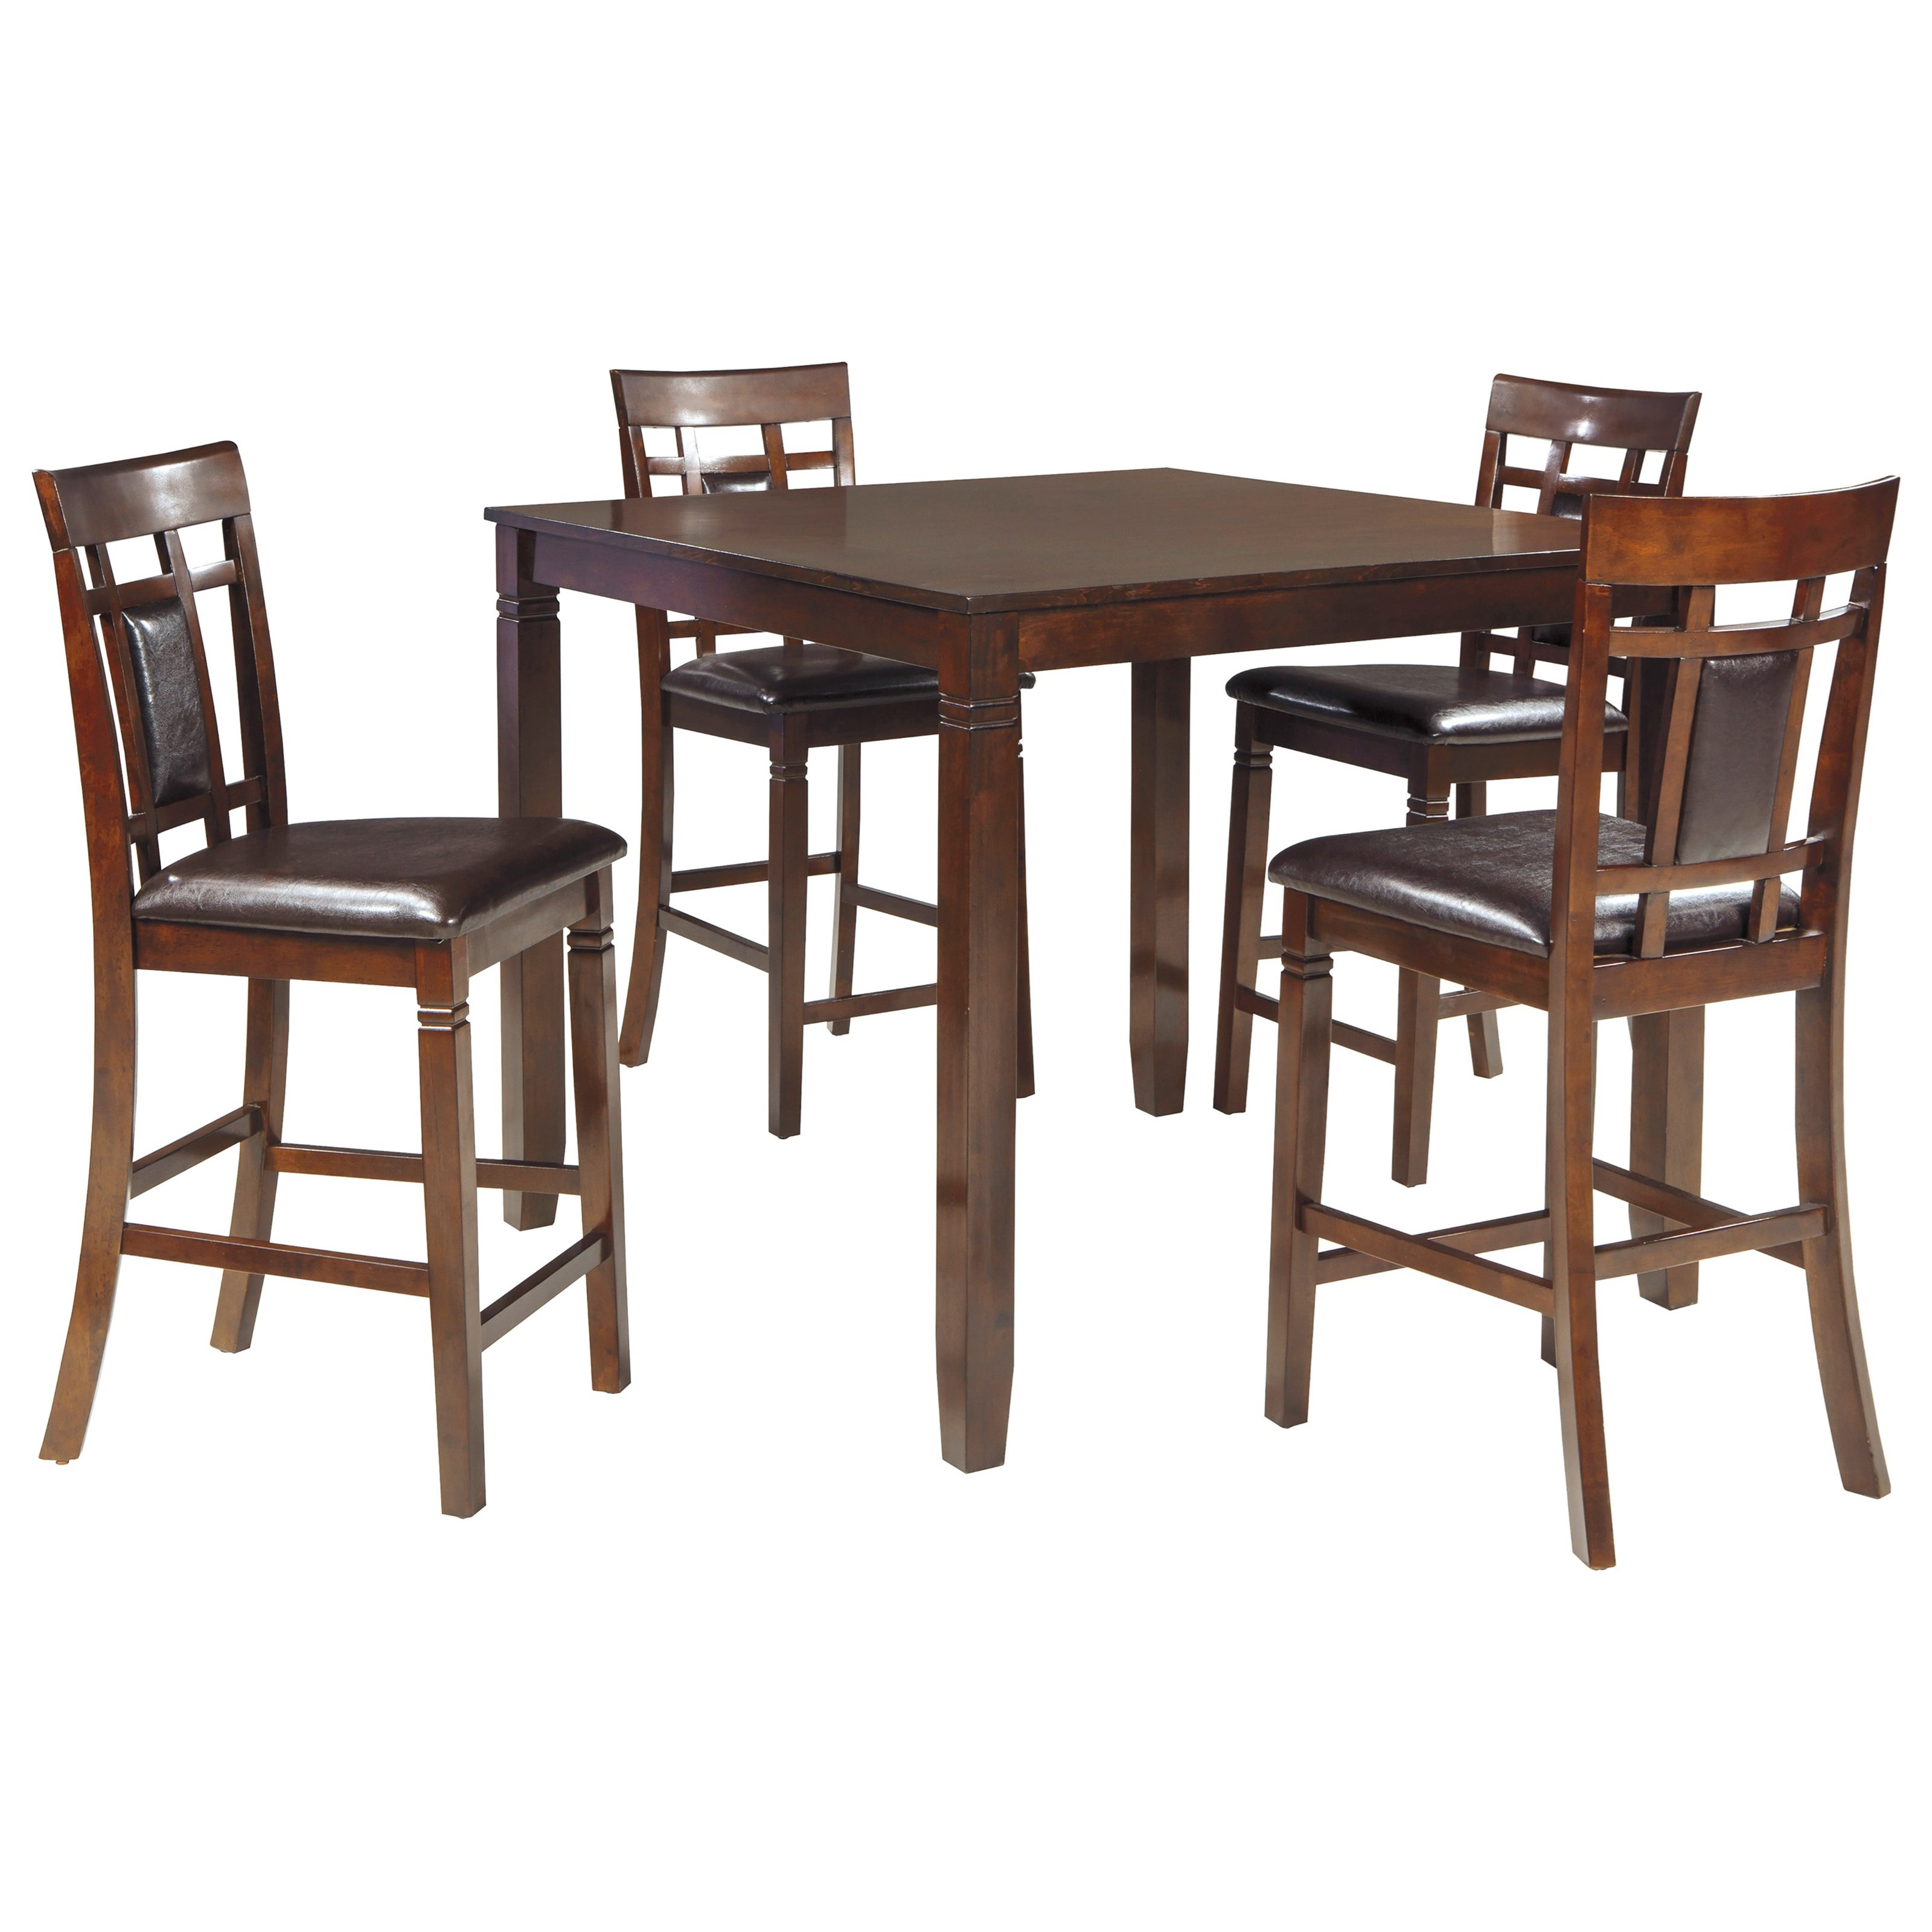 Bennox 5-Piece Dining Room Counter Table Set by Signature Design by Ashley at Zak's Warehouse Clearance Center